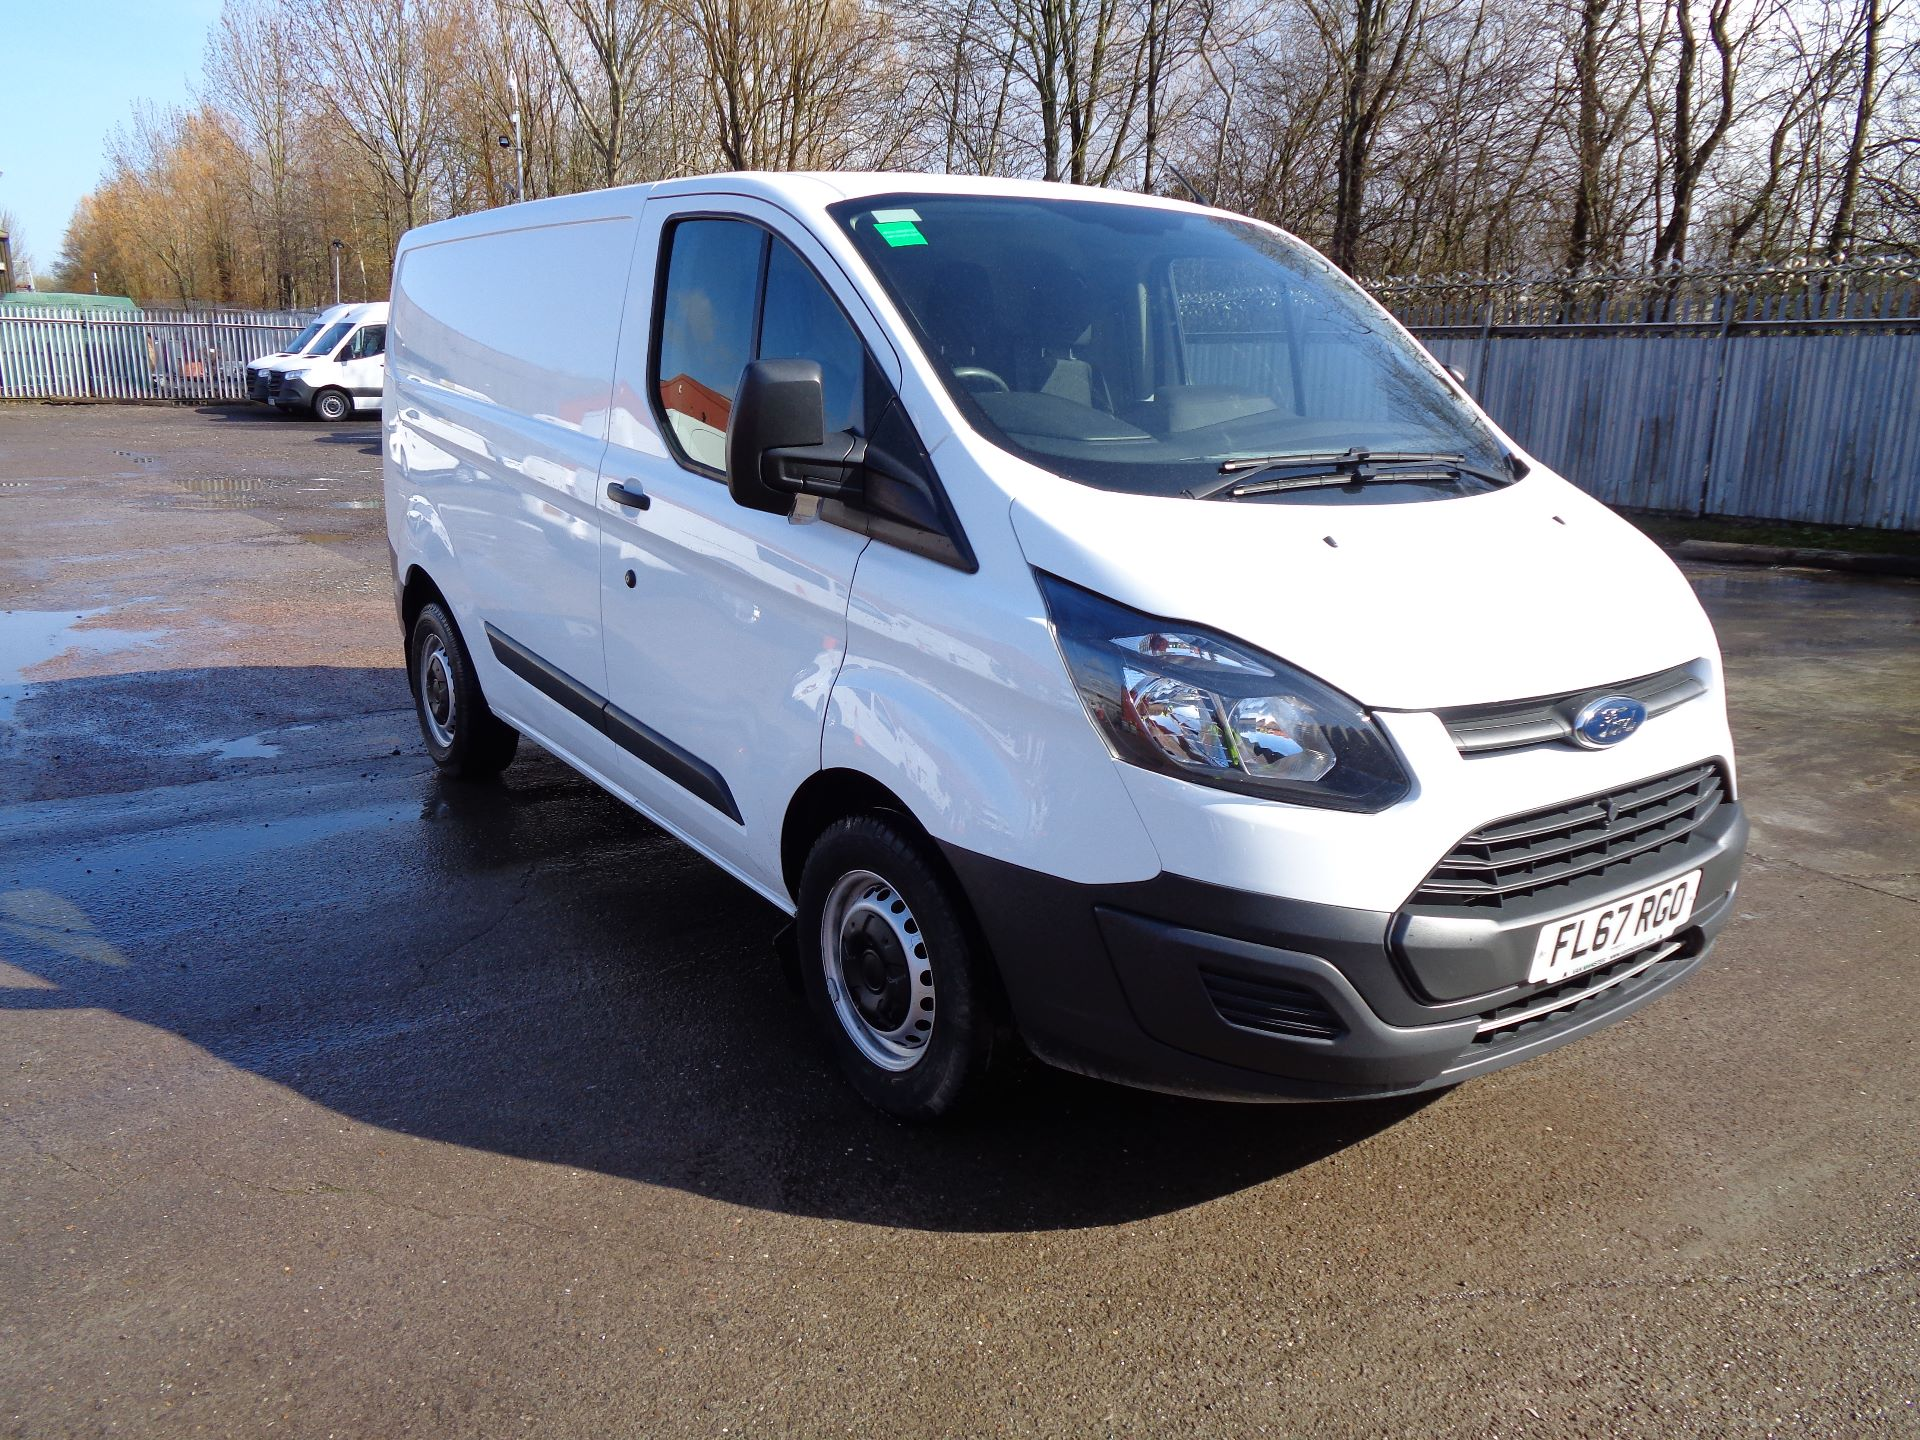 2017 Ford Transit Custom  290 L1 DIESEL FWD 2.0 TDCI 105PS LOW ROOF VAN EURO 6 (FL67RGO)